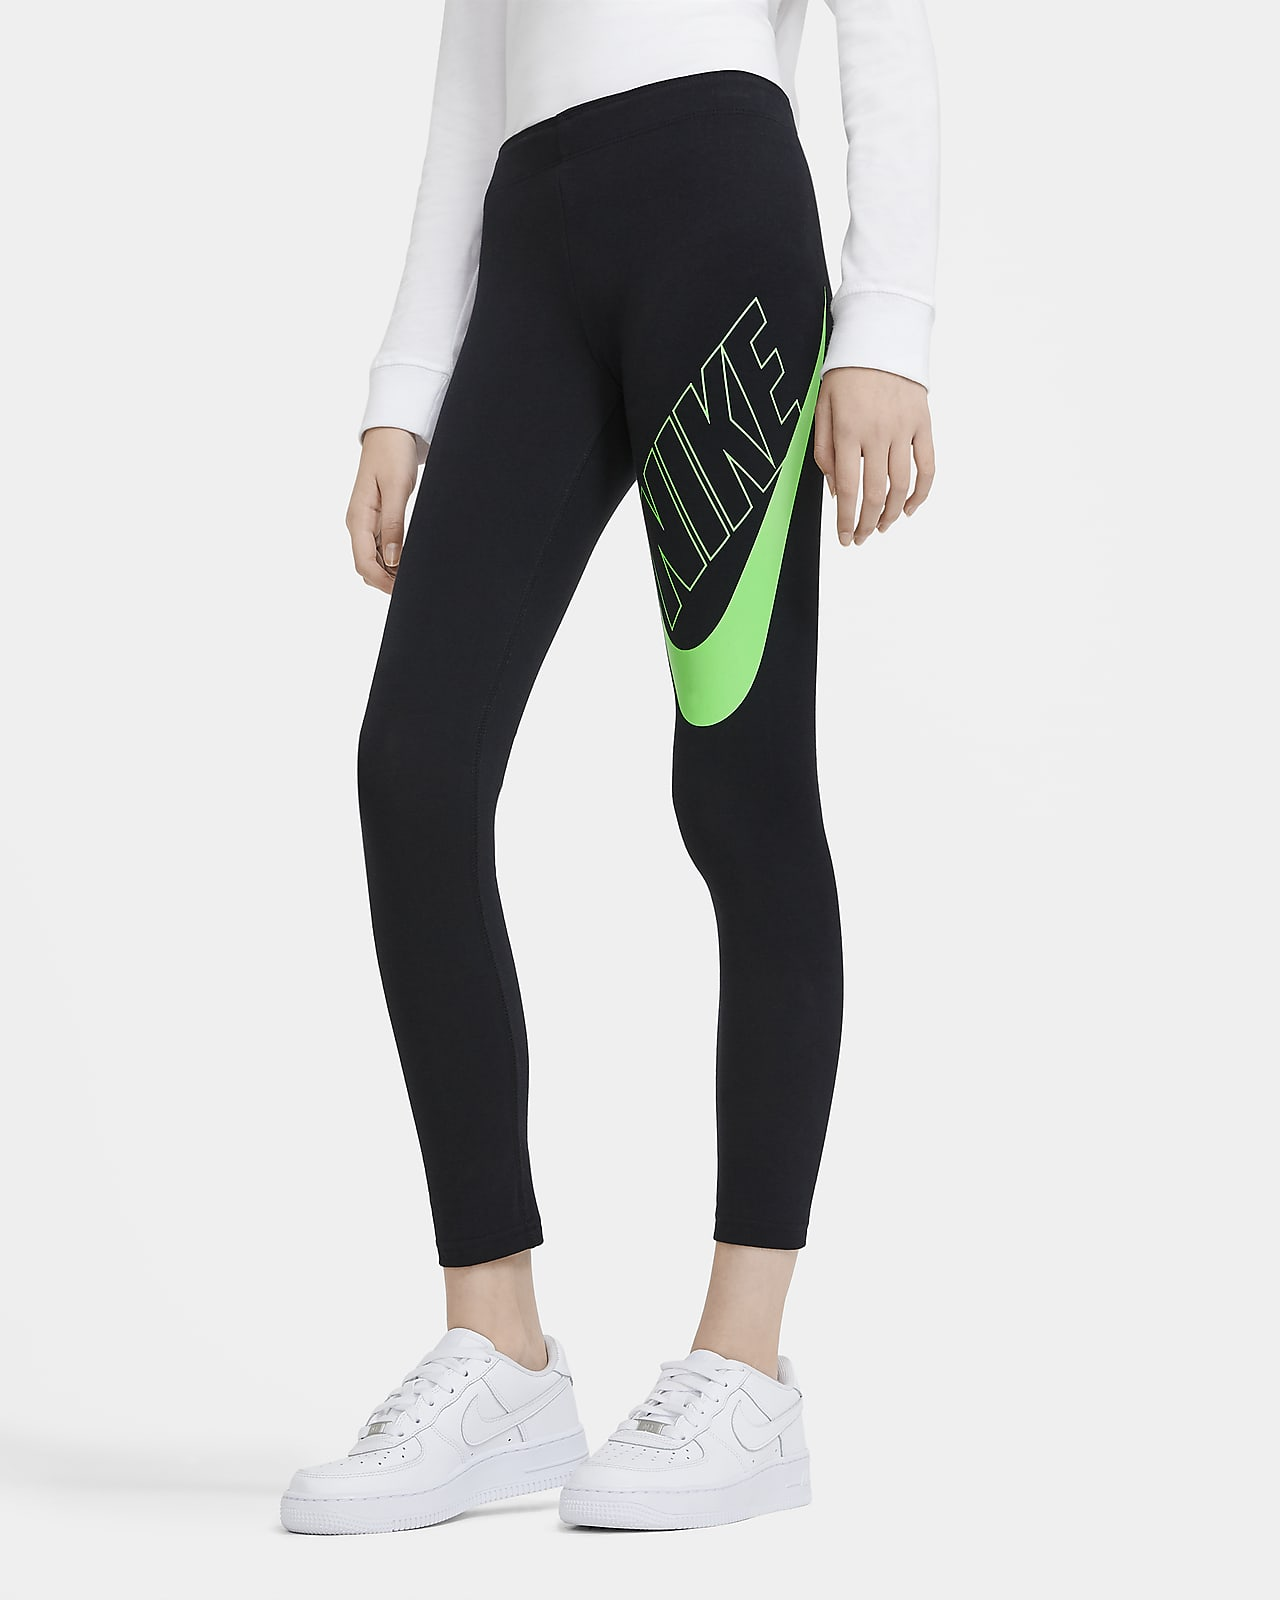 Nike Sportswear Favorites Leggings que brillan en la oscuridad - Niña